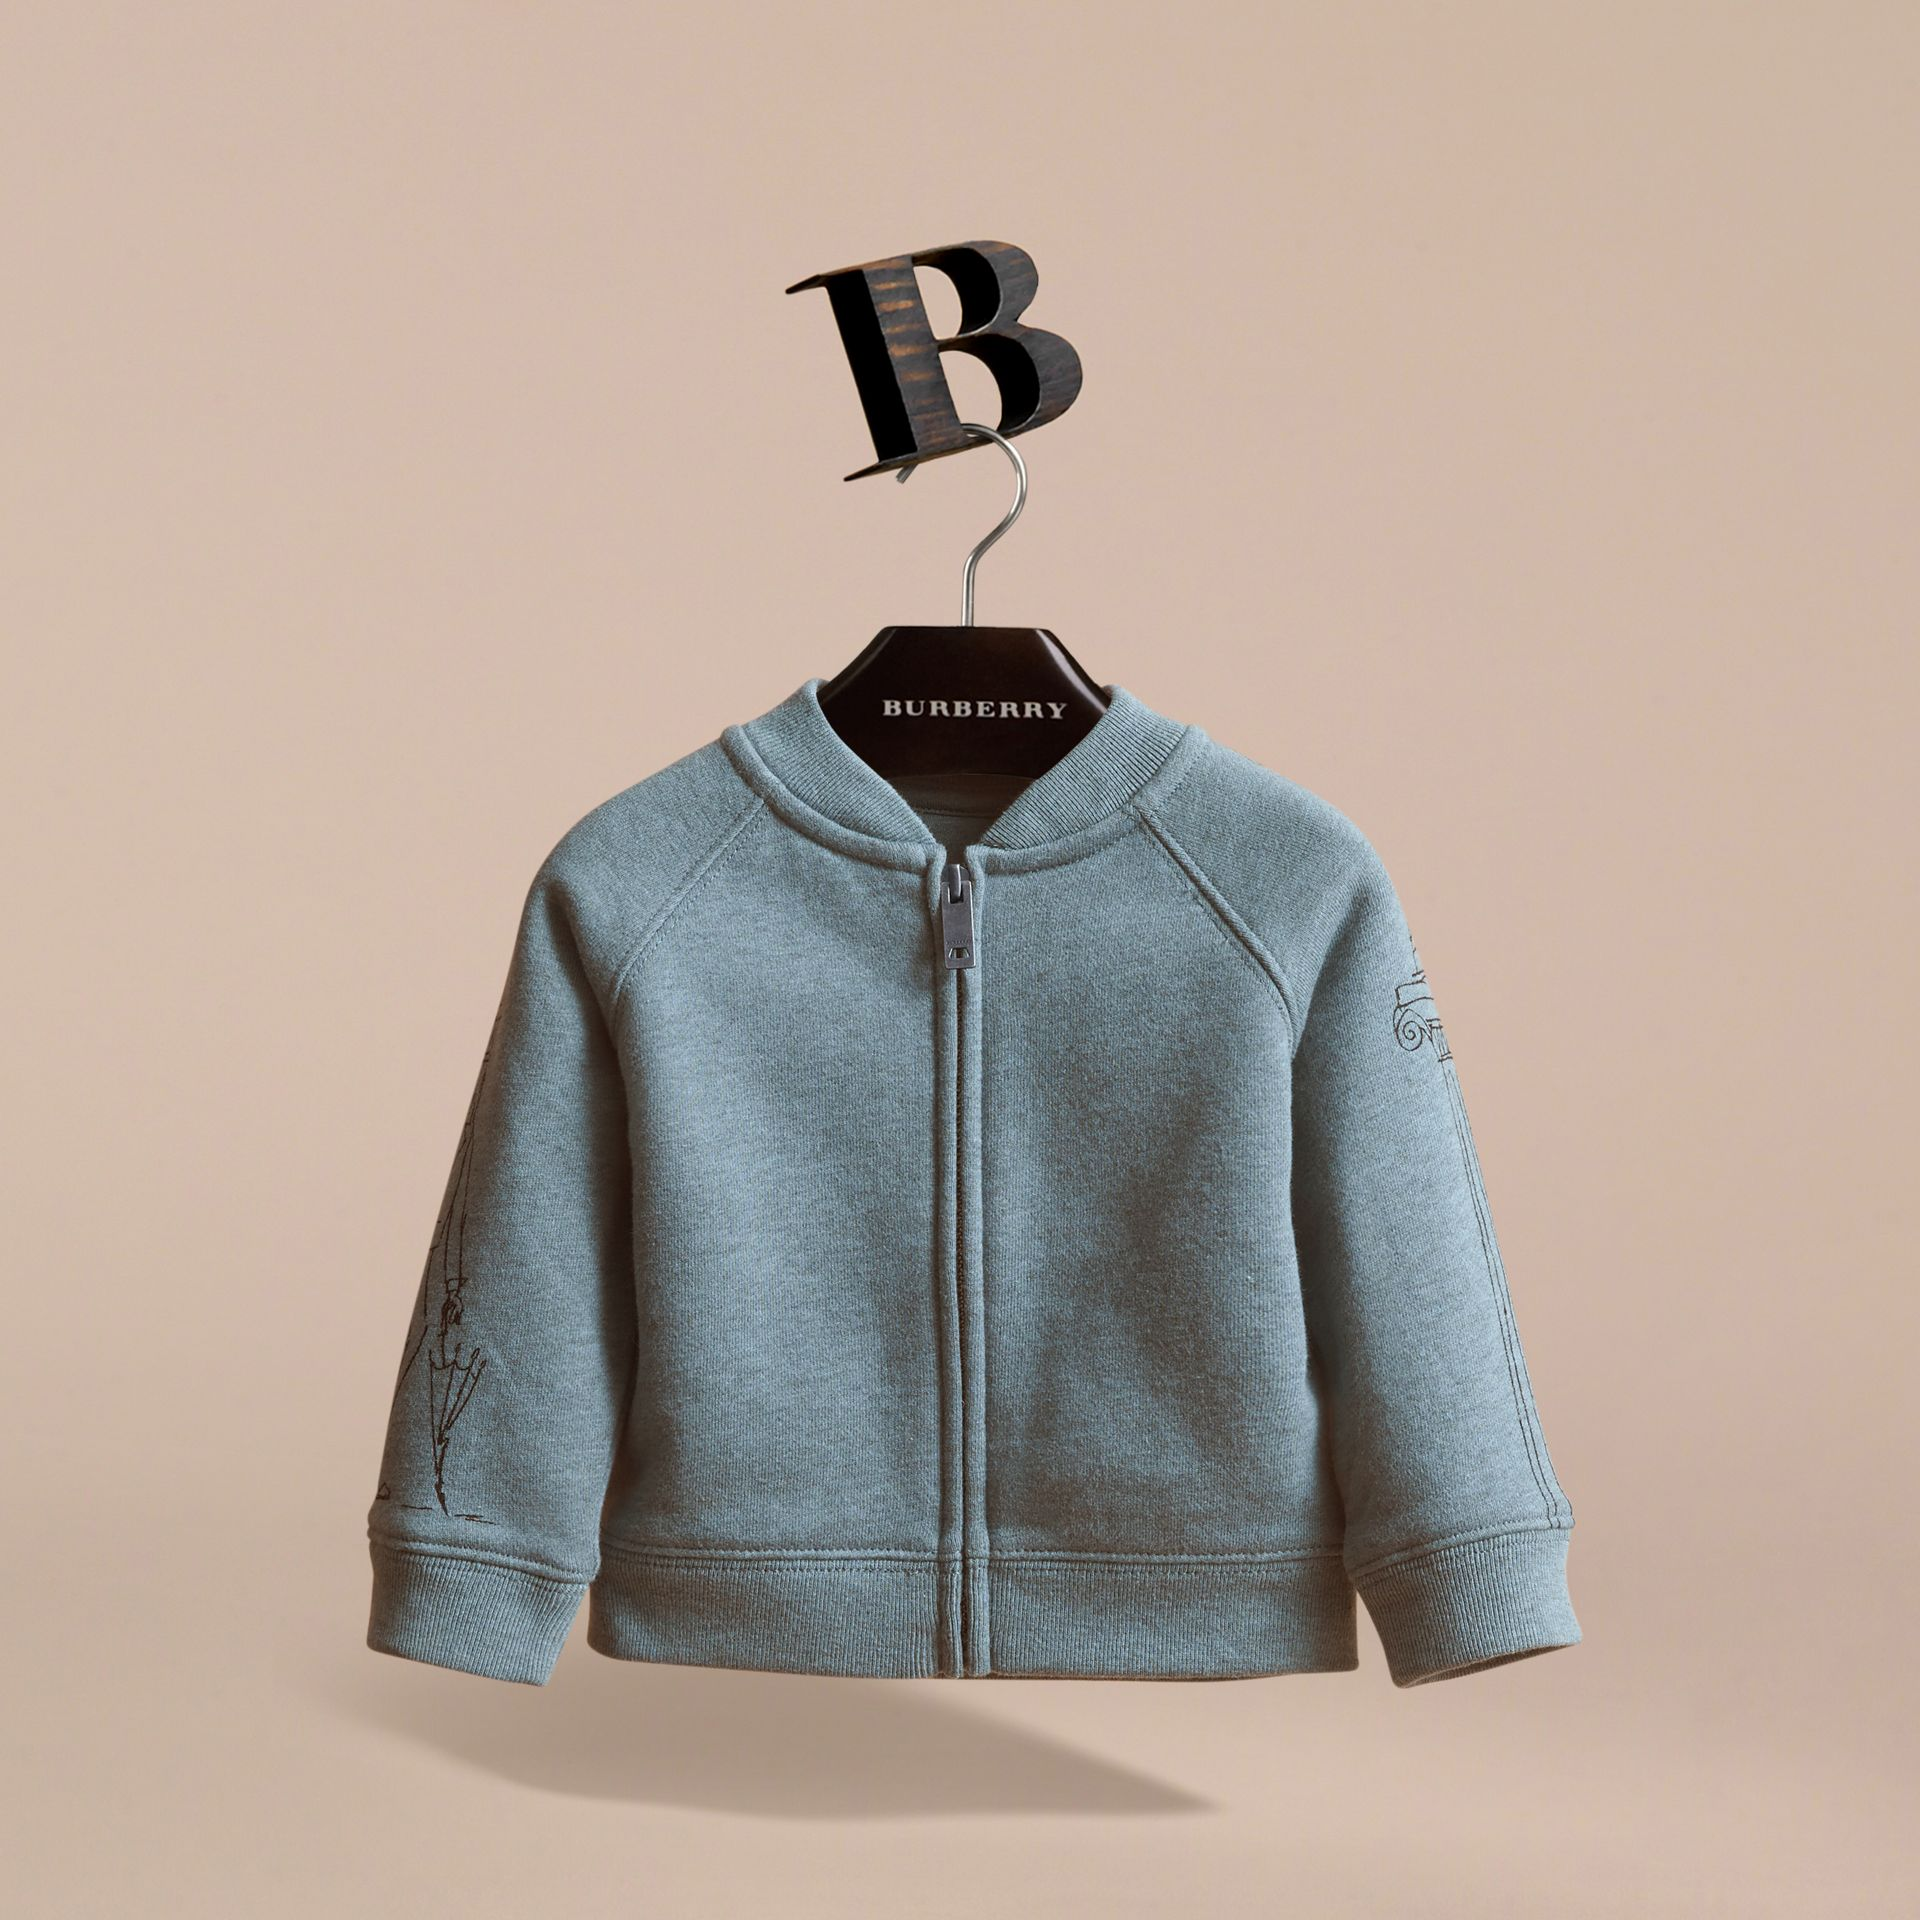 London Icons Print Cotton Zip-front Sweatshirt in Dusty Blue - Children | Burberry Singapore - gallery image 3